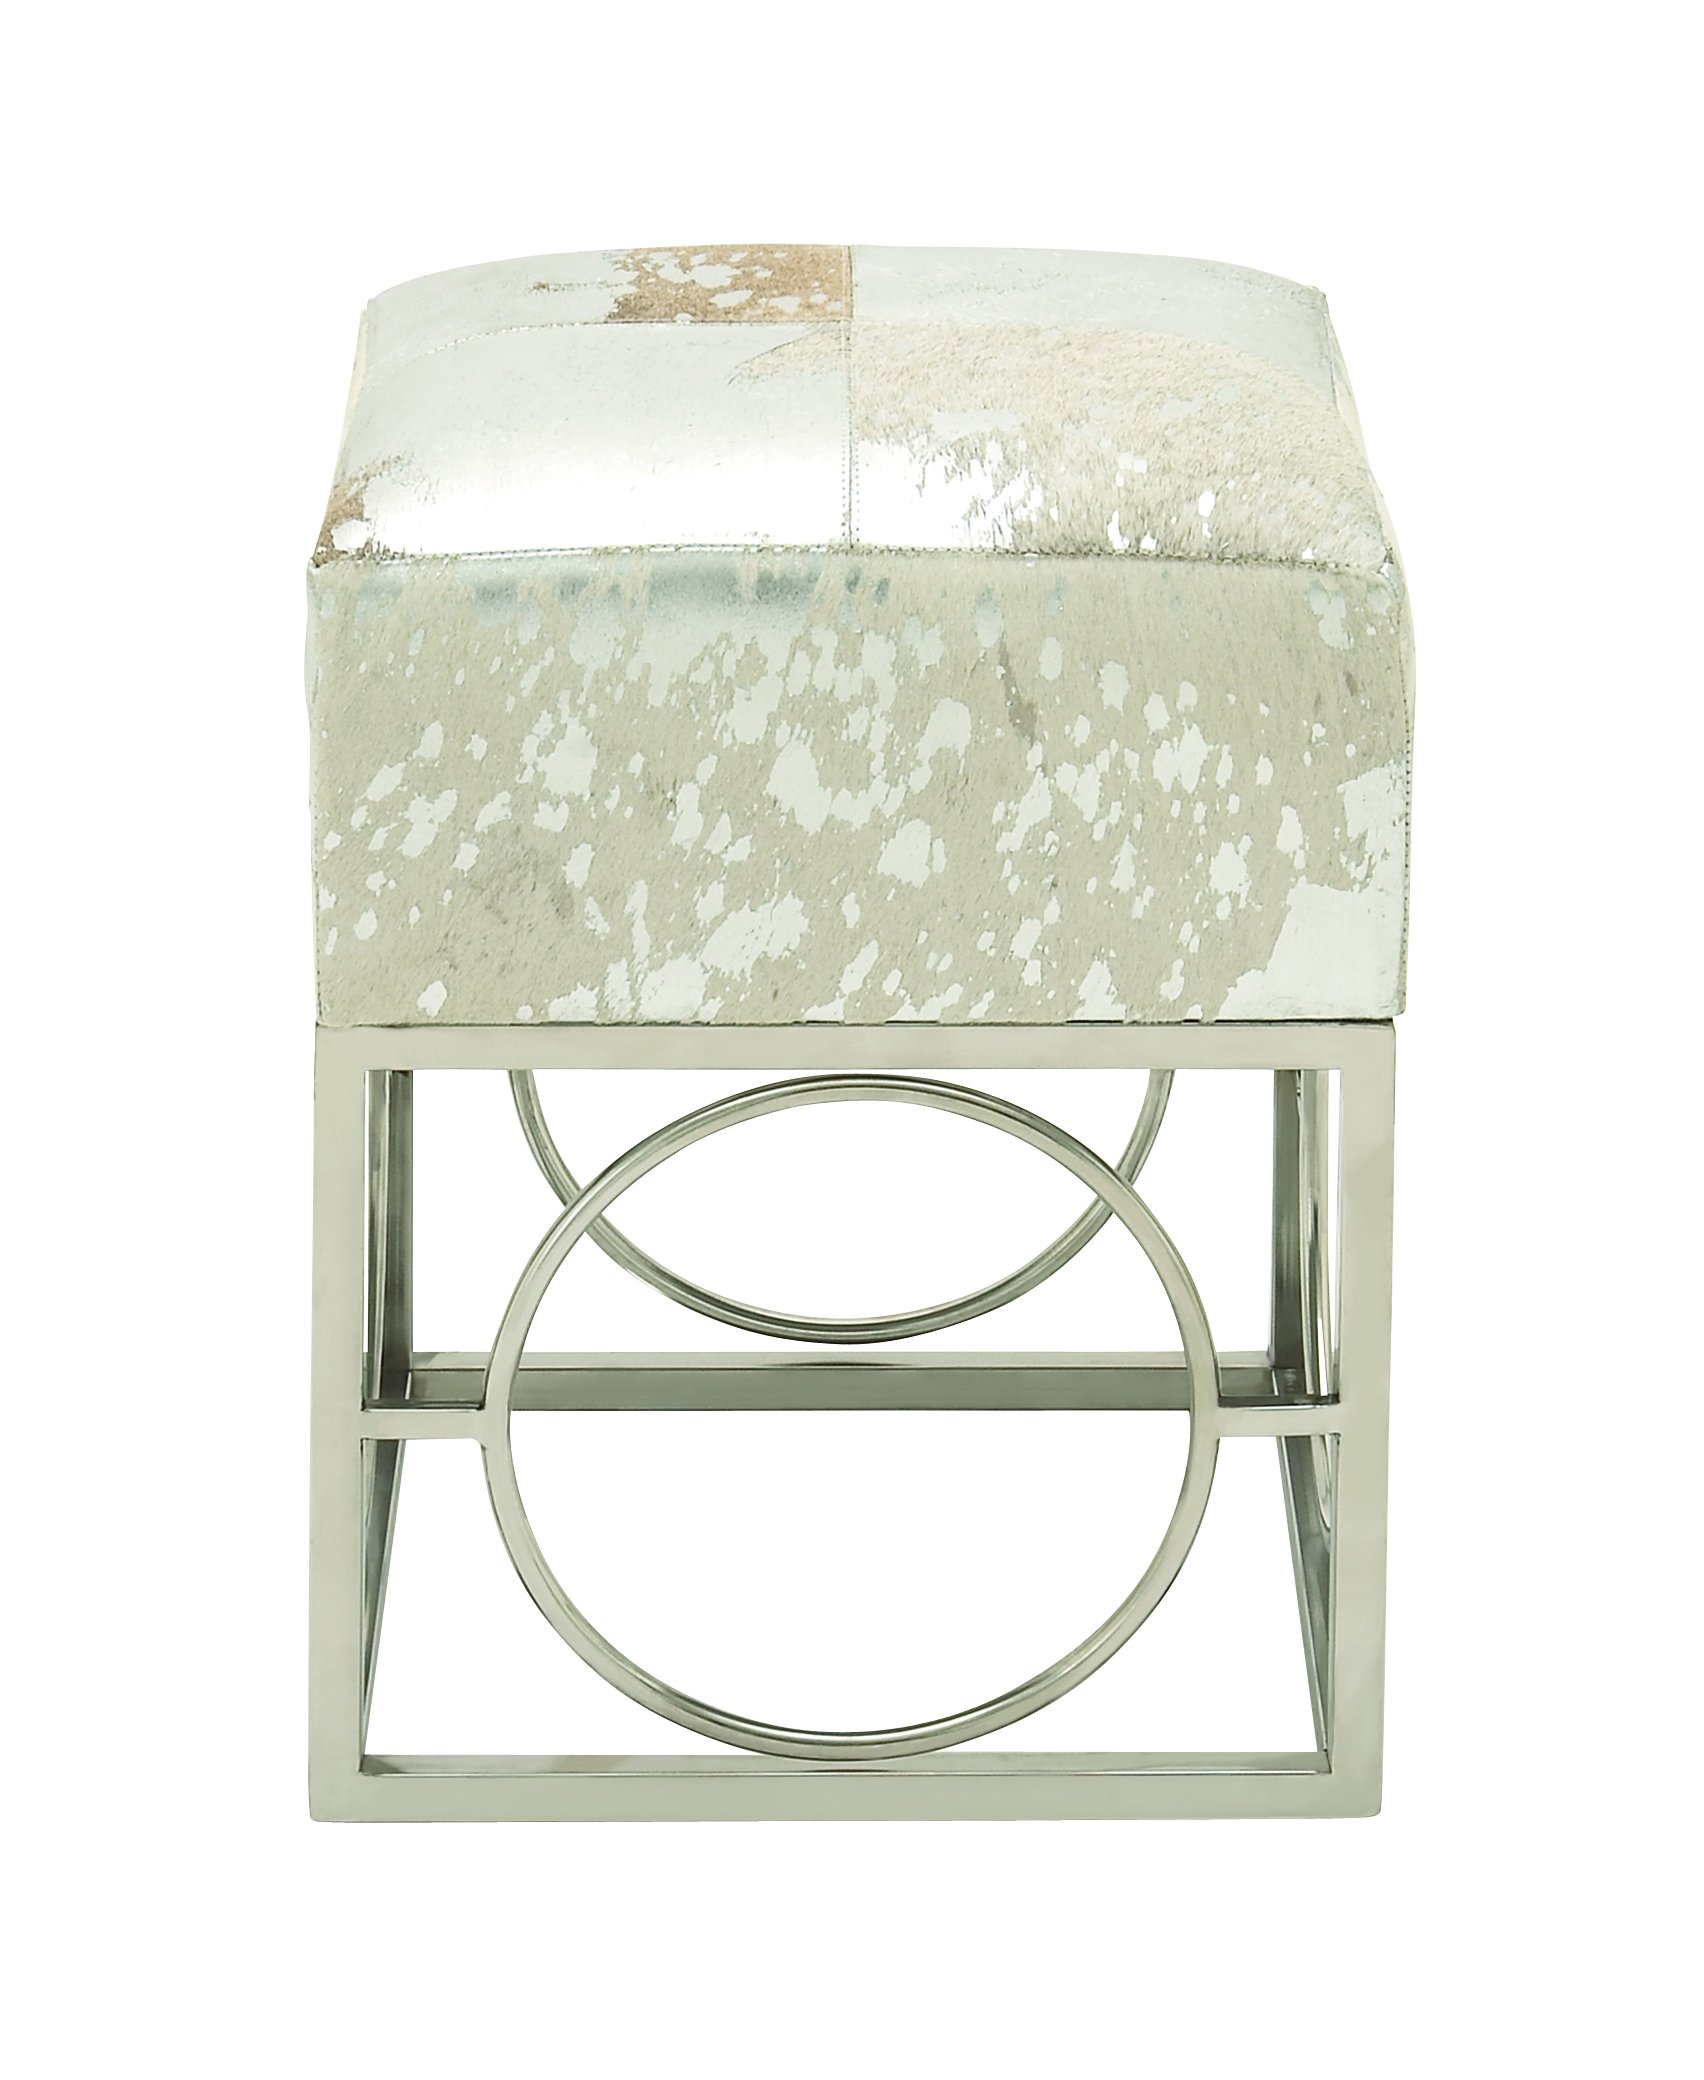 Deco 79 Stainless Steel Leather Hide Silver Stool, 16'' x 22'' by Deco 79